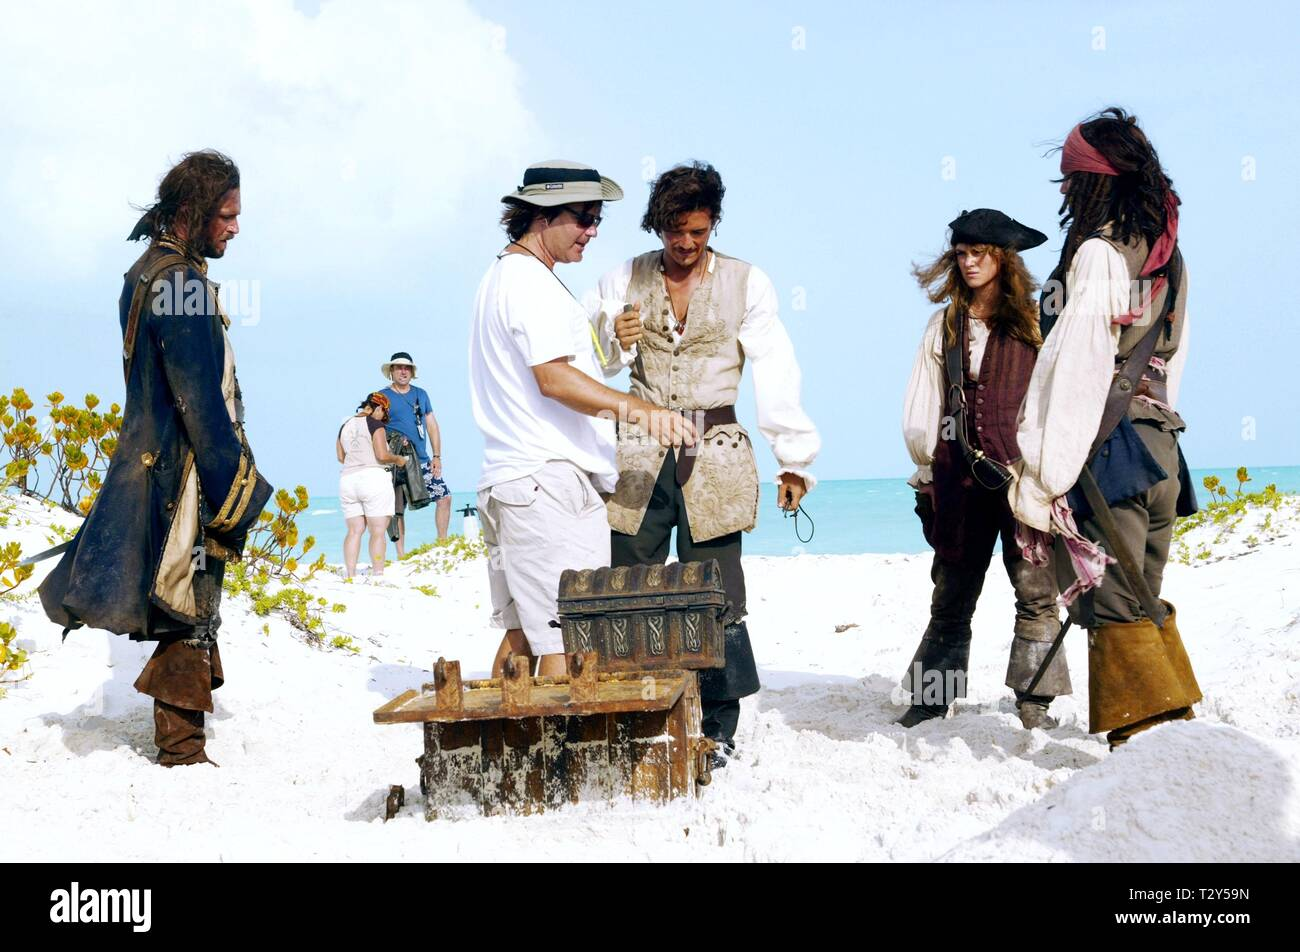 PIRATES OF THE CARIBBEAN: DEAD MAN'S CHEST, JACK DAVENPORT, GORE VERBINSKI, ORLANDO BLOOM, KEIRA KNIGHTLEY , JOHNNY DEPP, 2006 - Stock Image